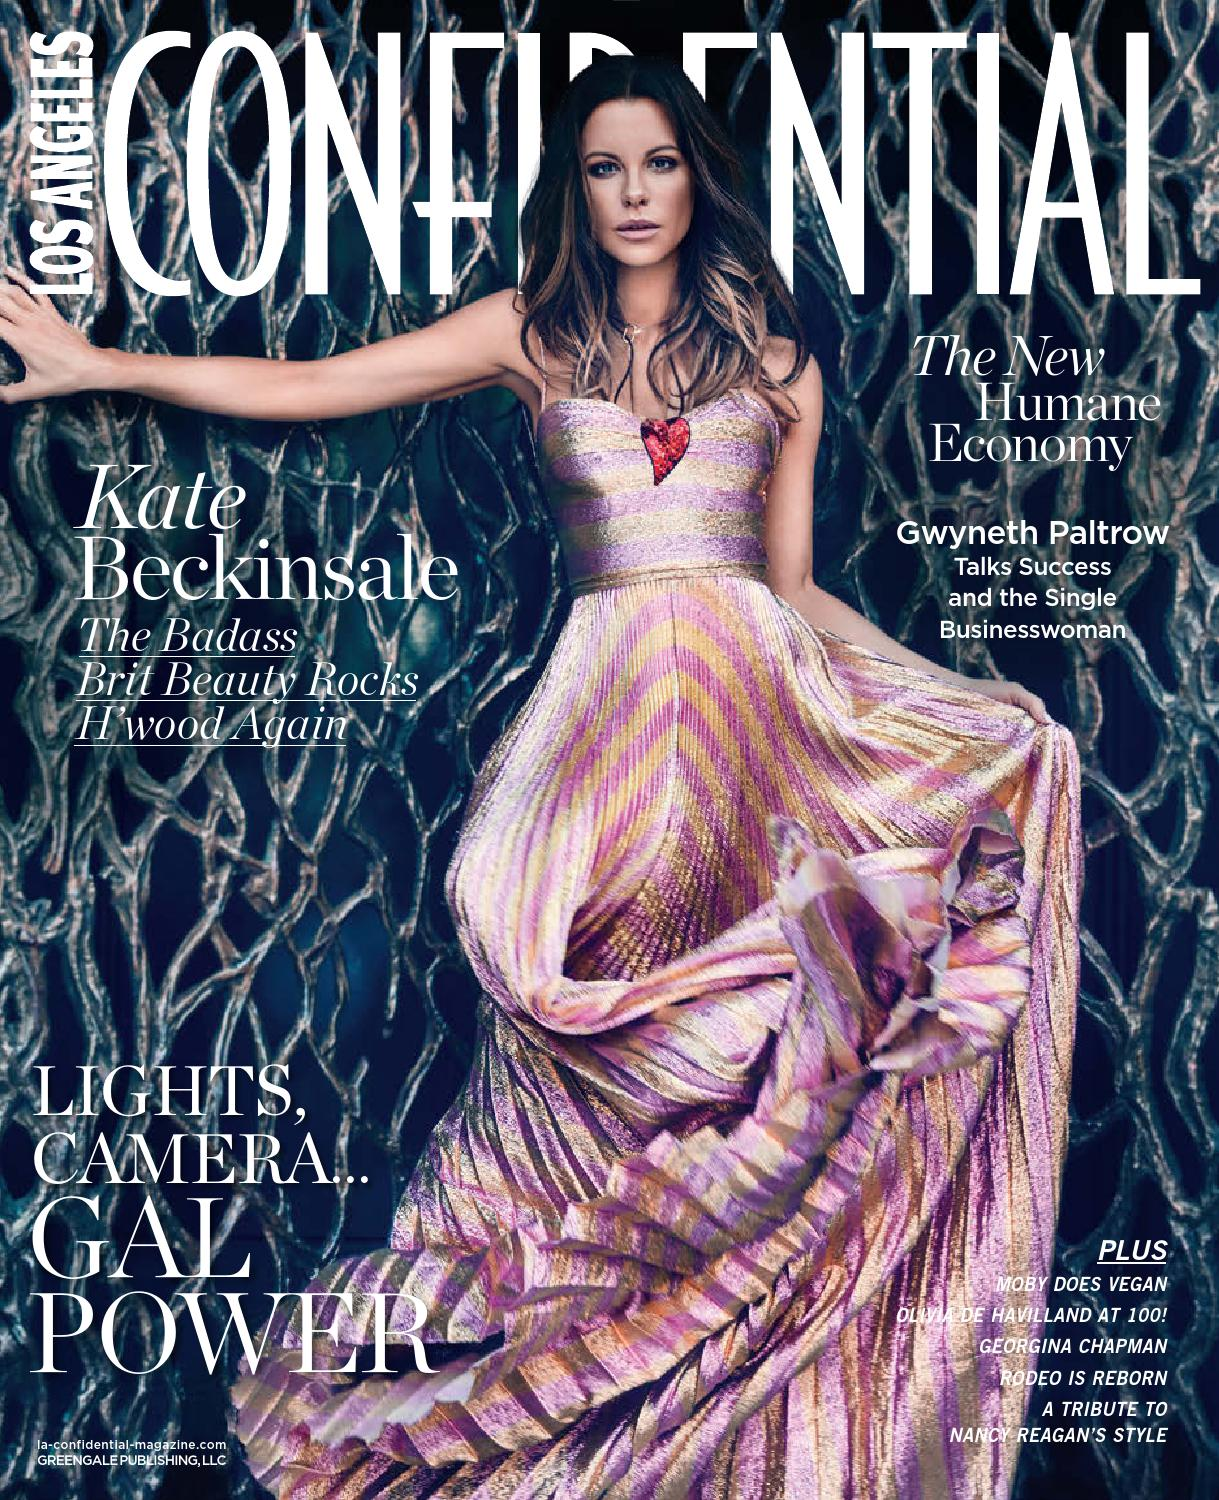 b64342b5a8ae Los Angeles Confidential - 2016 - Issue 2 - Late Spring - Kate Beckinsale  by MODERN LUXURY - issuu